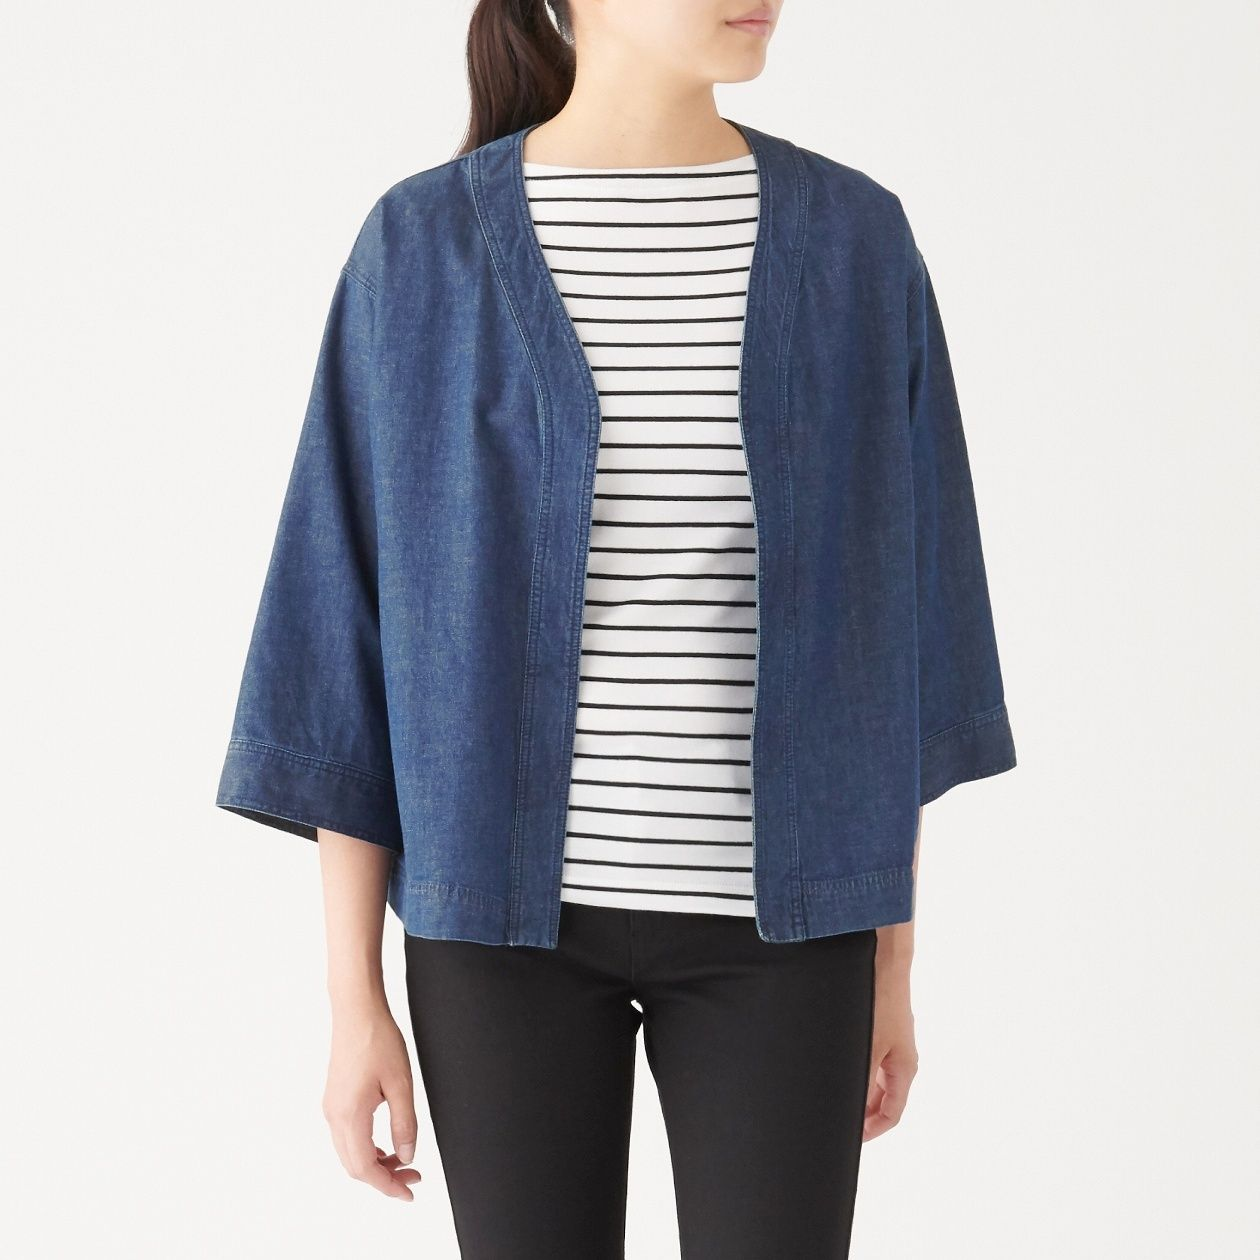 INDIAN COTTON DENIM CARDIGAN